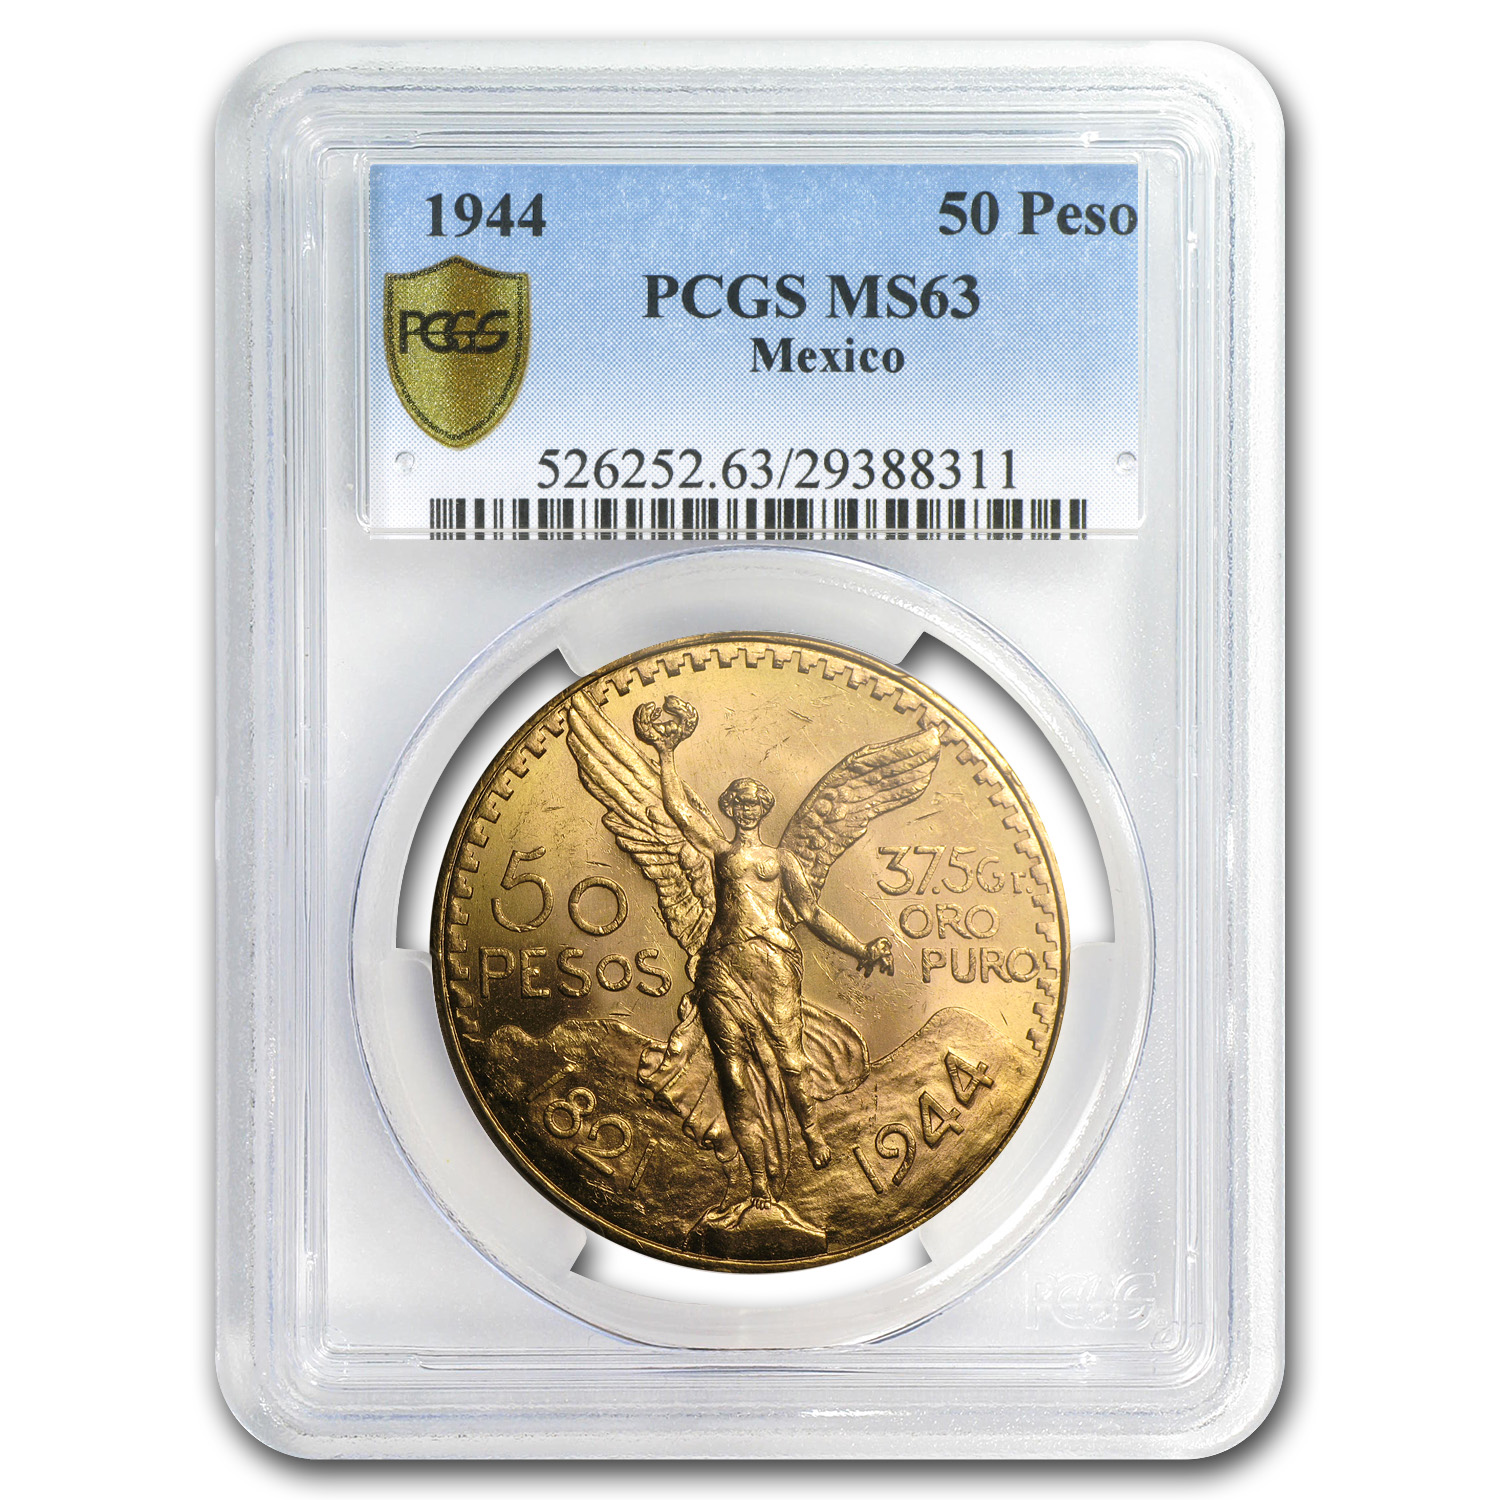 Mexico 1944 50 Pesos Gold Coin - MS-63 PCGS